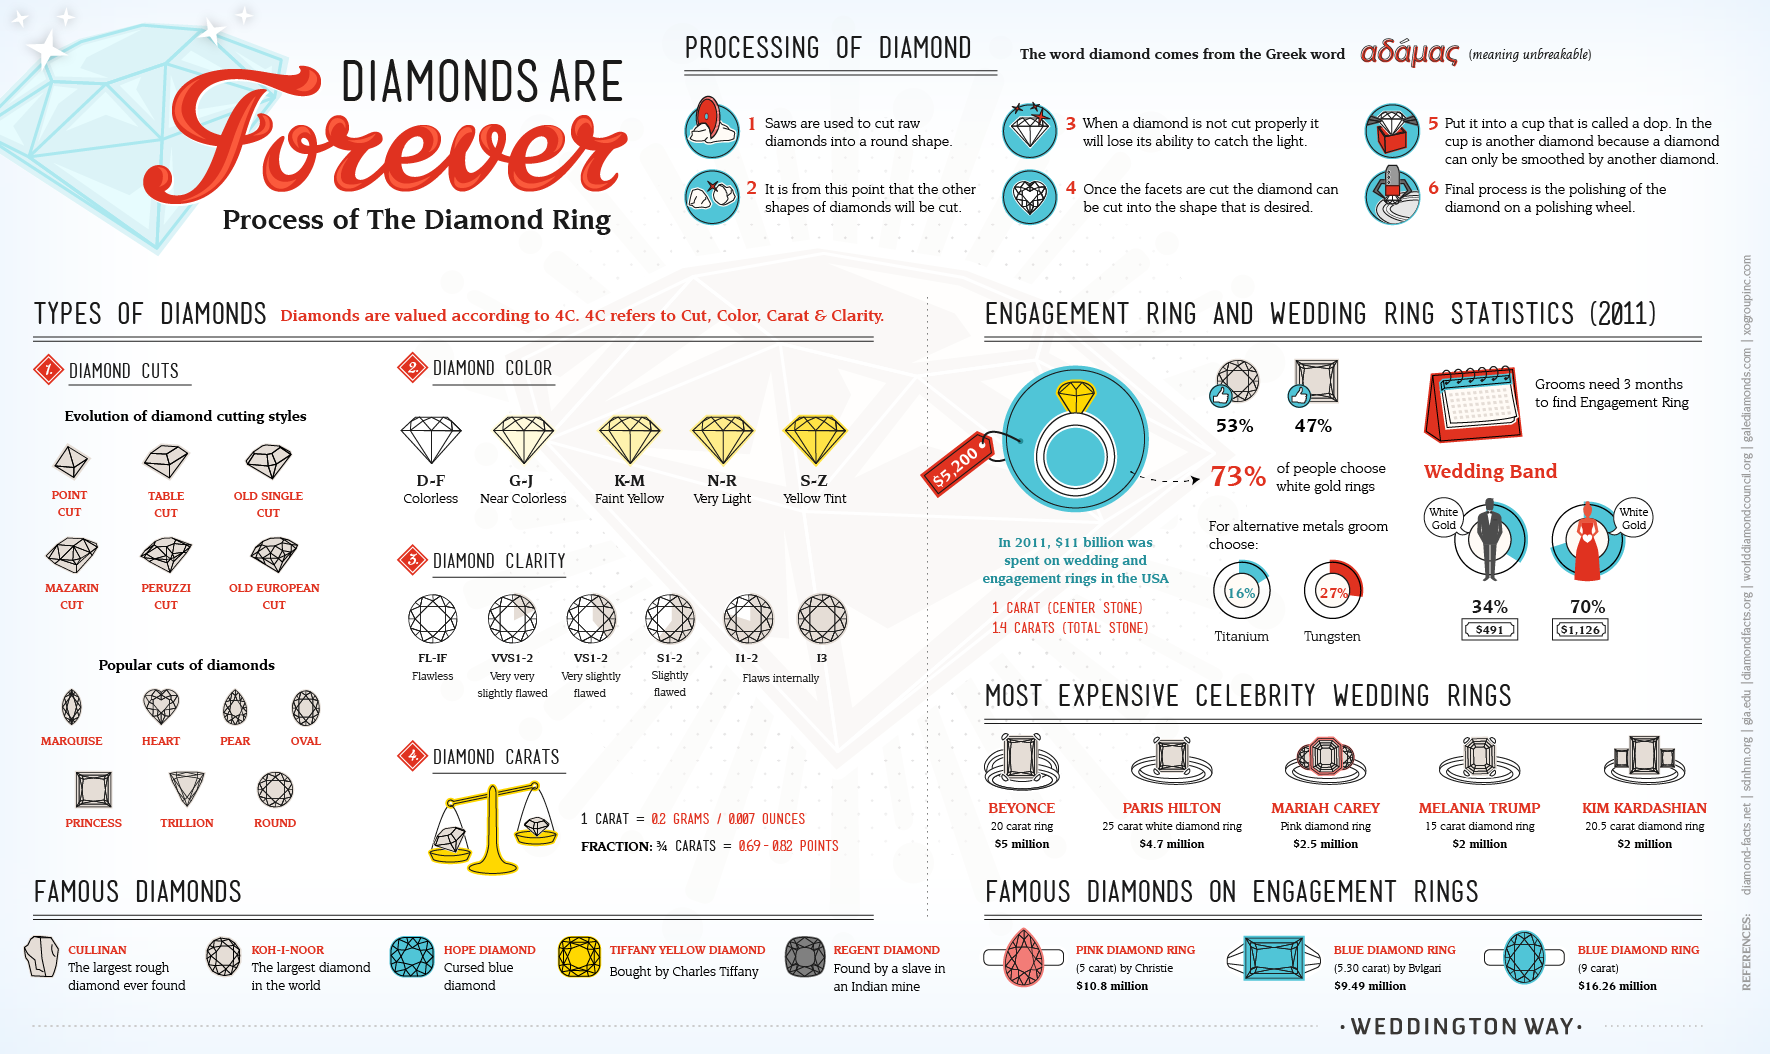 Diamonds Are Forever: Process of a Diamond Ring